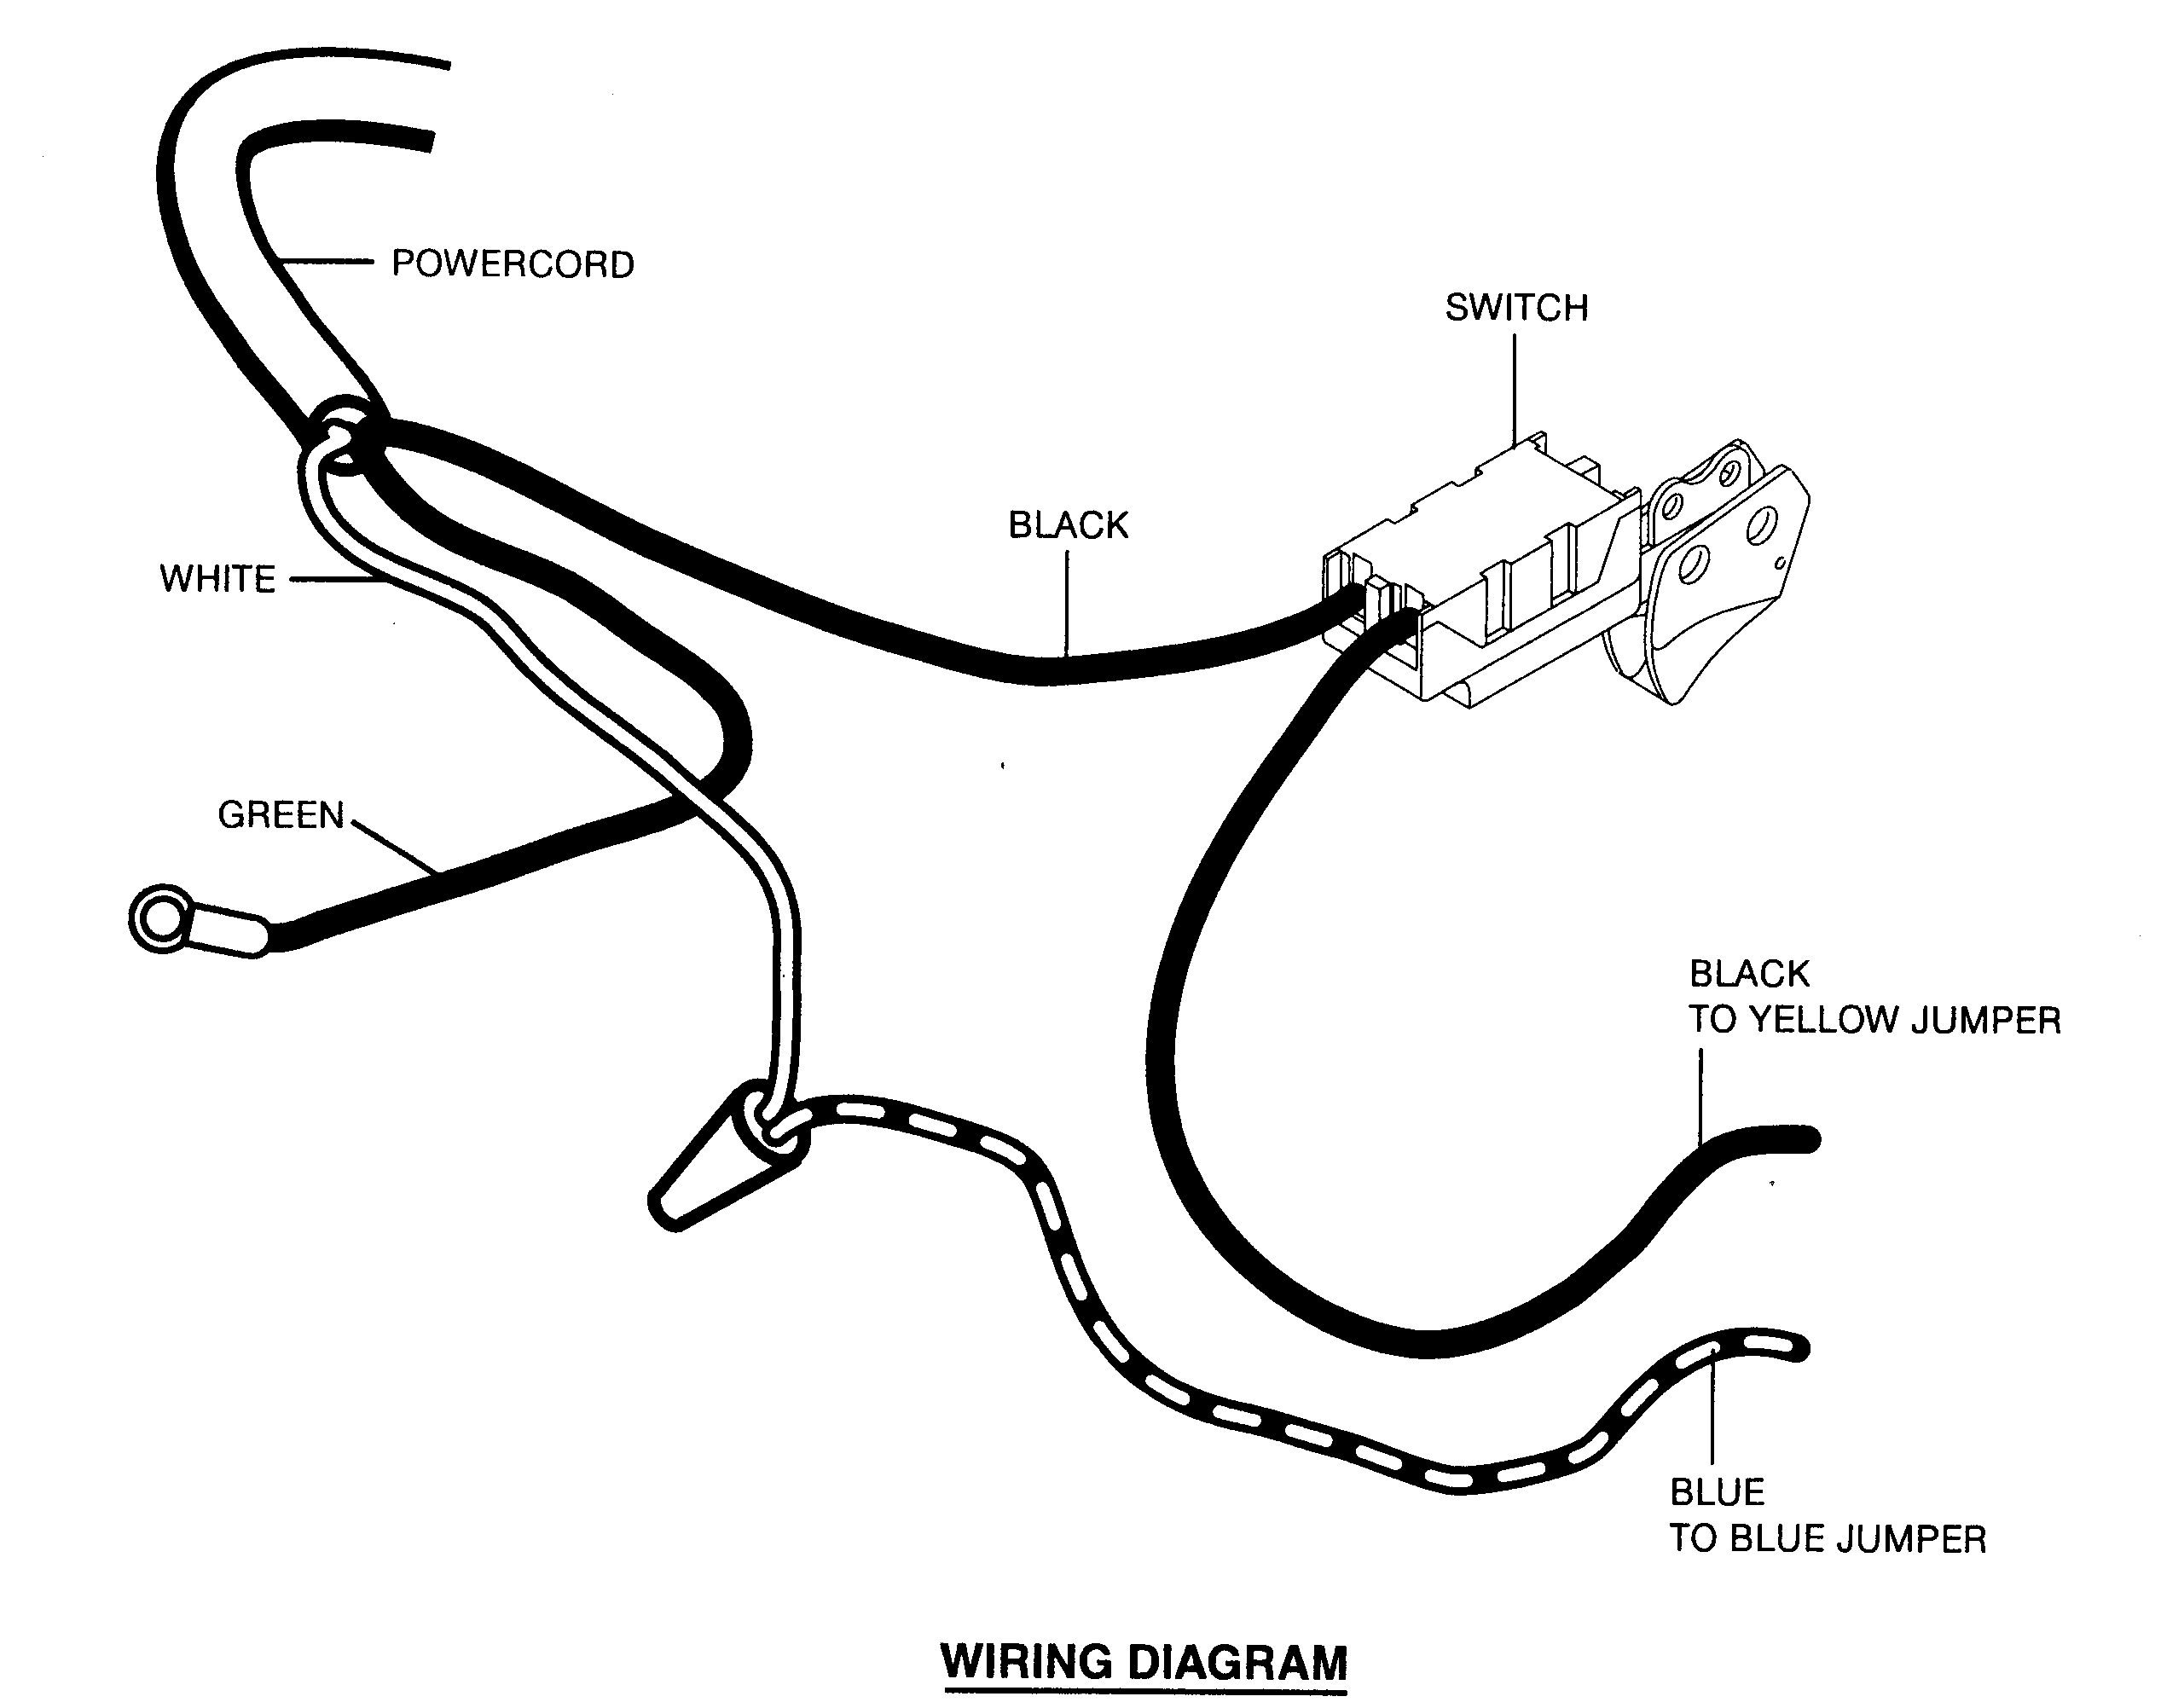 Hitachi Table Saw Wiring Diagram Mazda5 Wiring Diagram